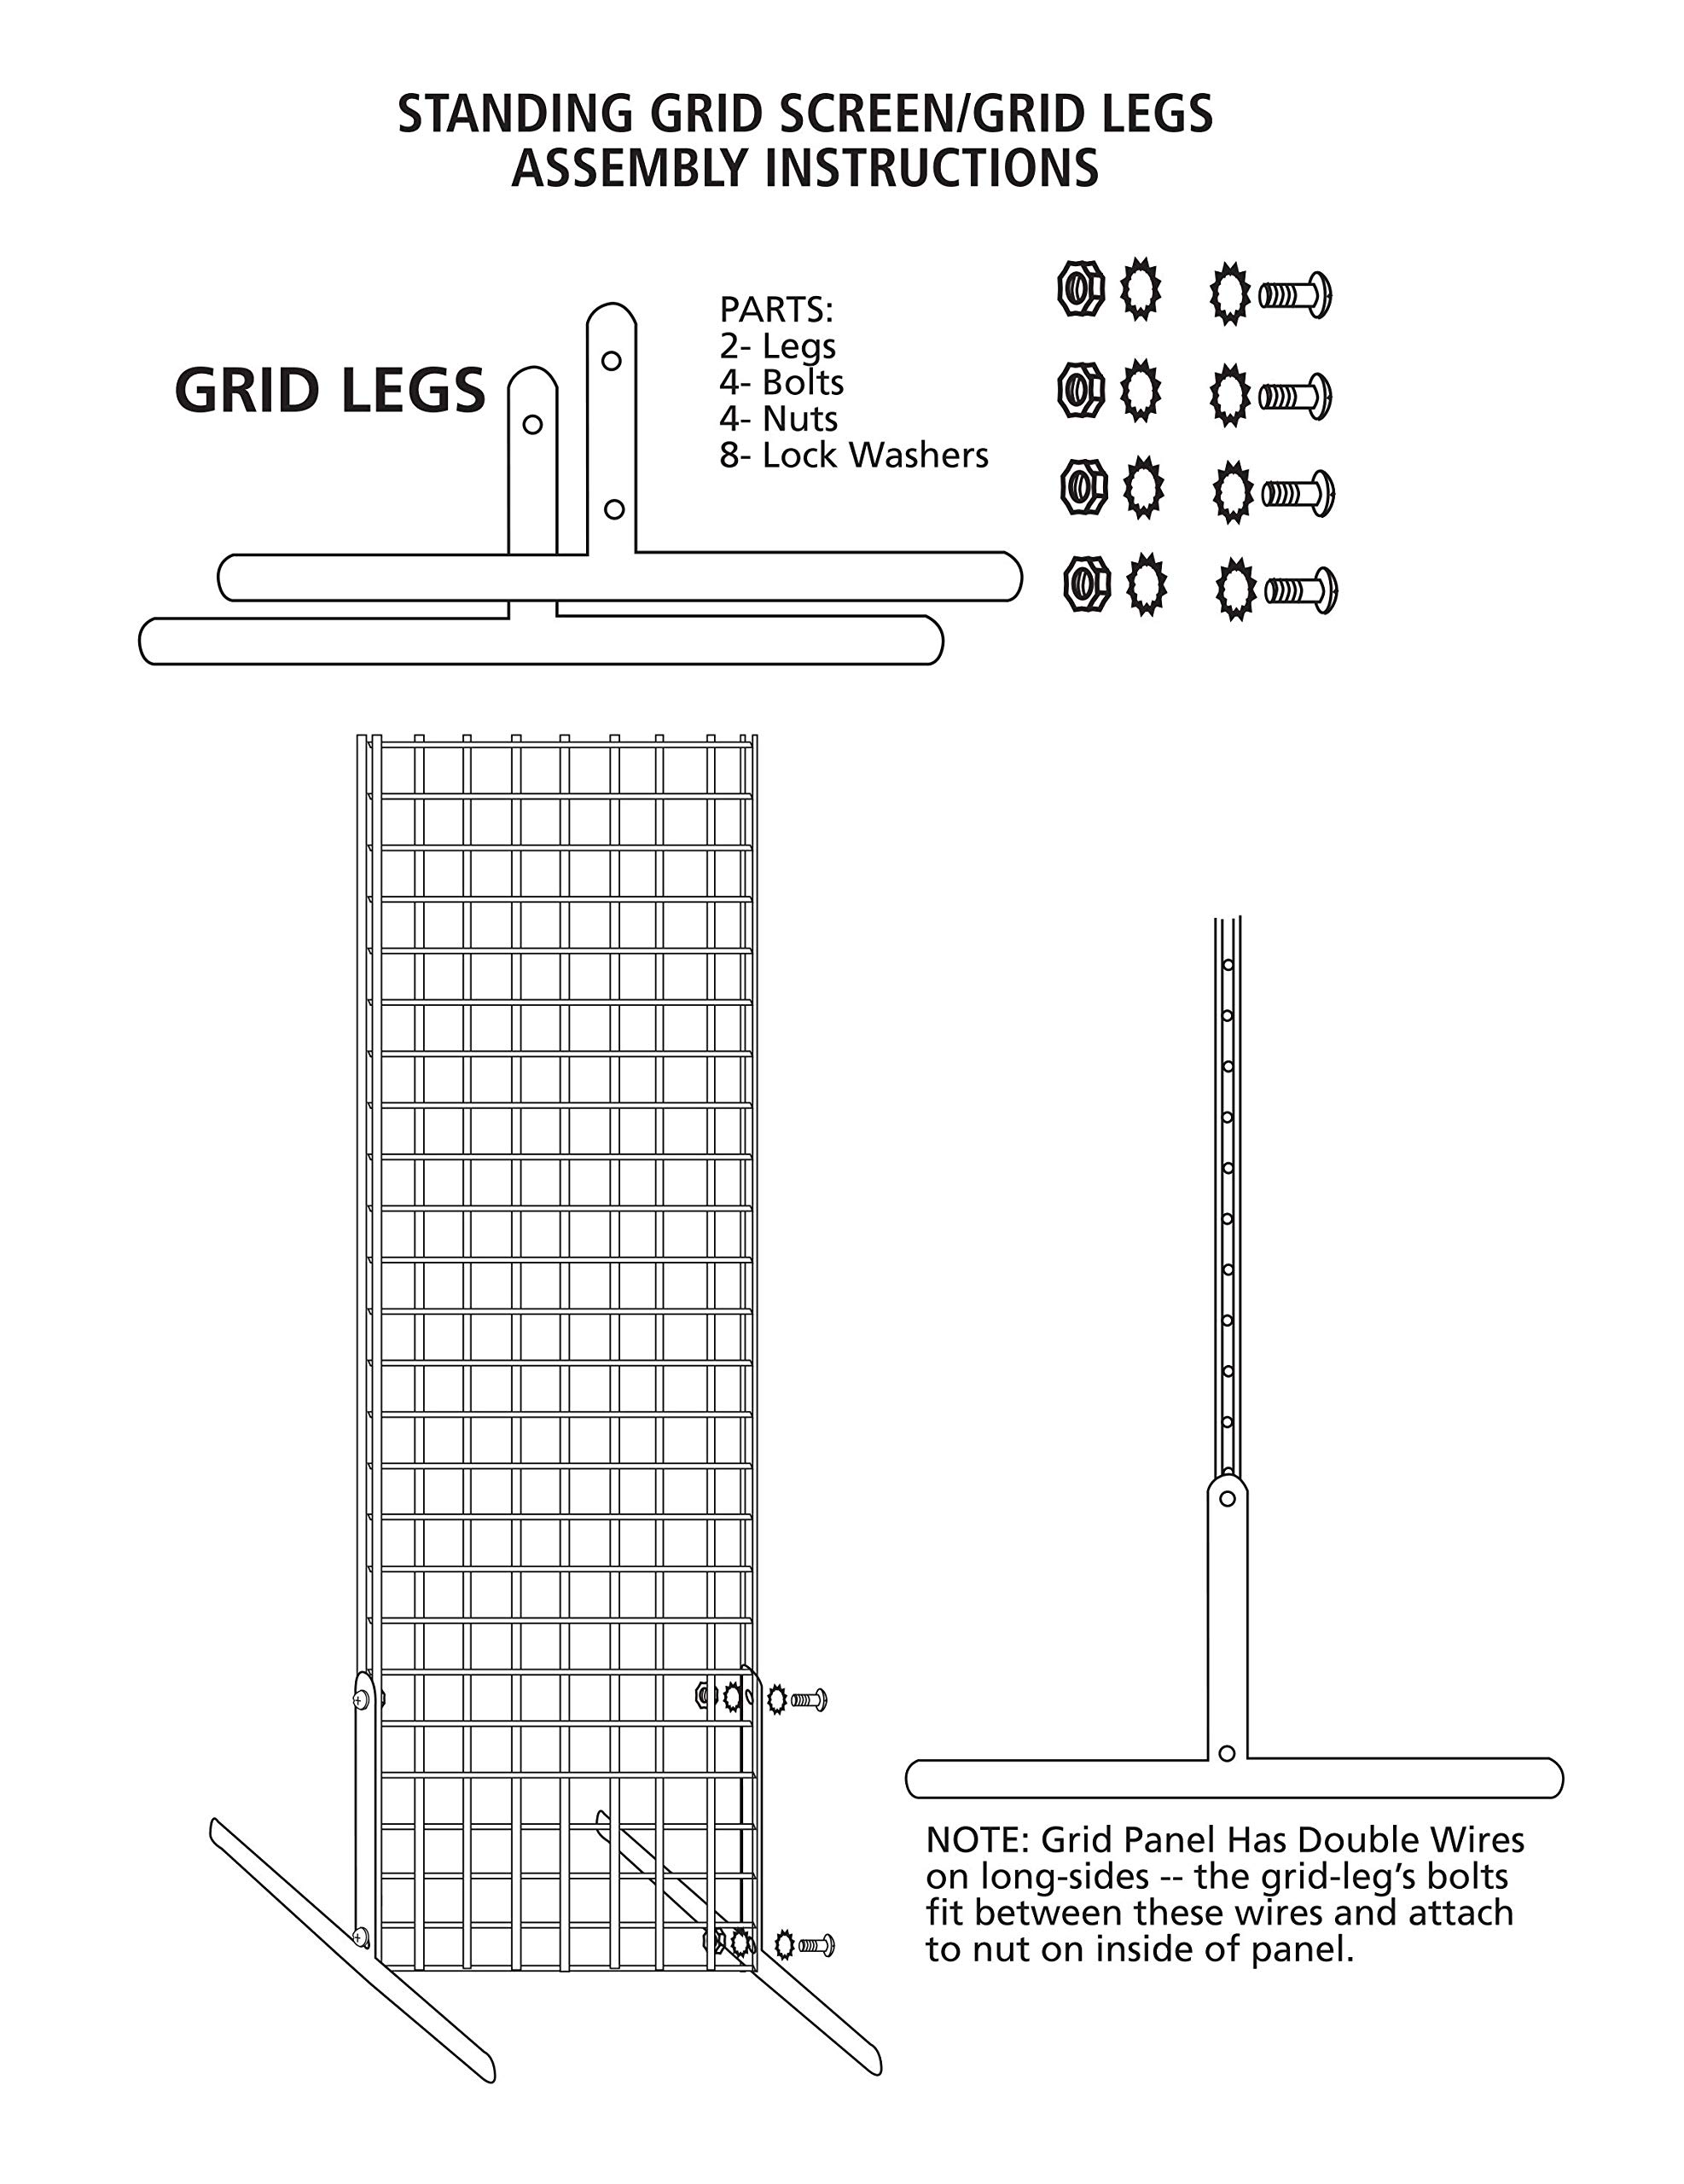 2 x 6 Foot Chrome Standing Grid Screen - Includes Grid Panel and 2 Grid Legs